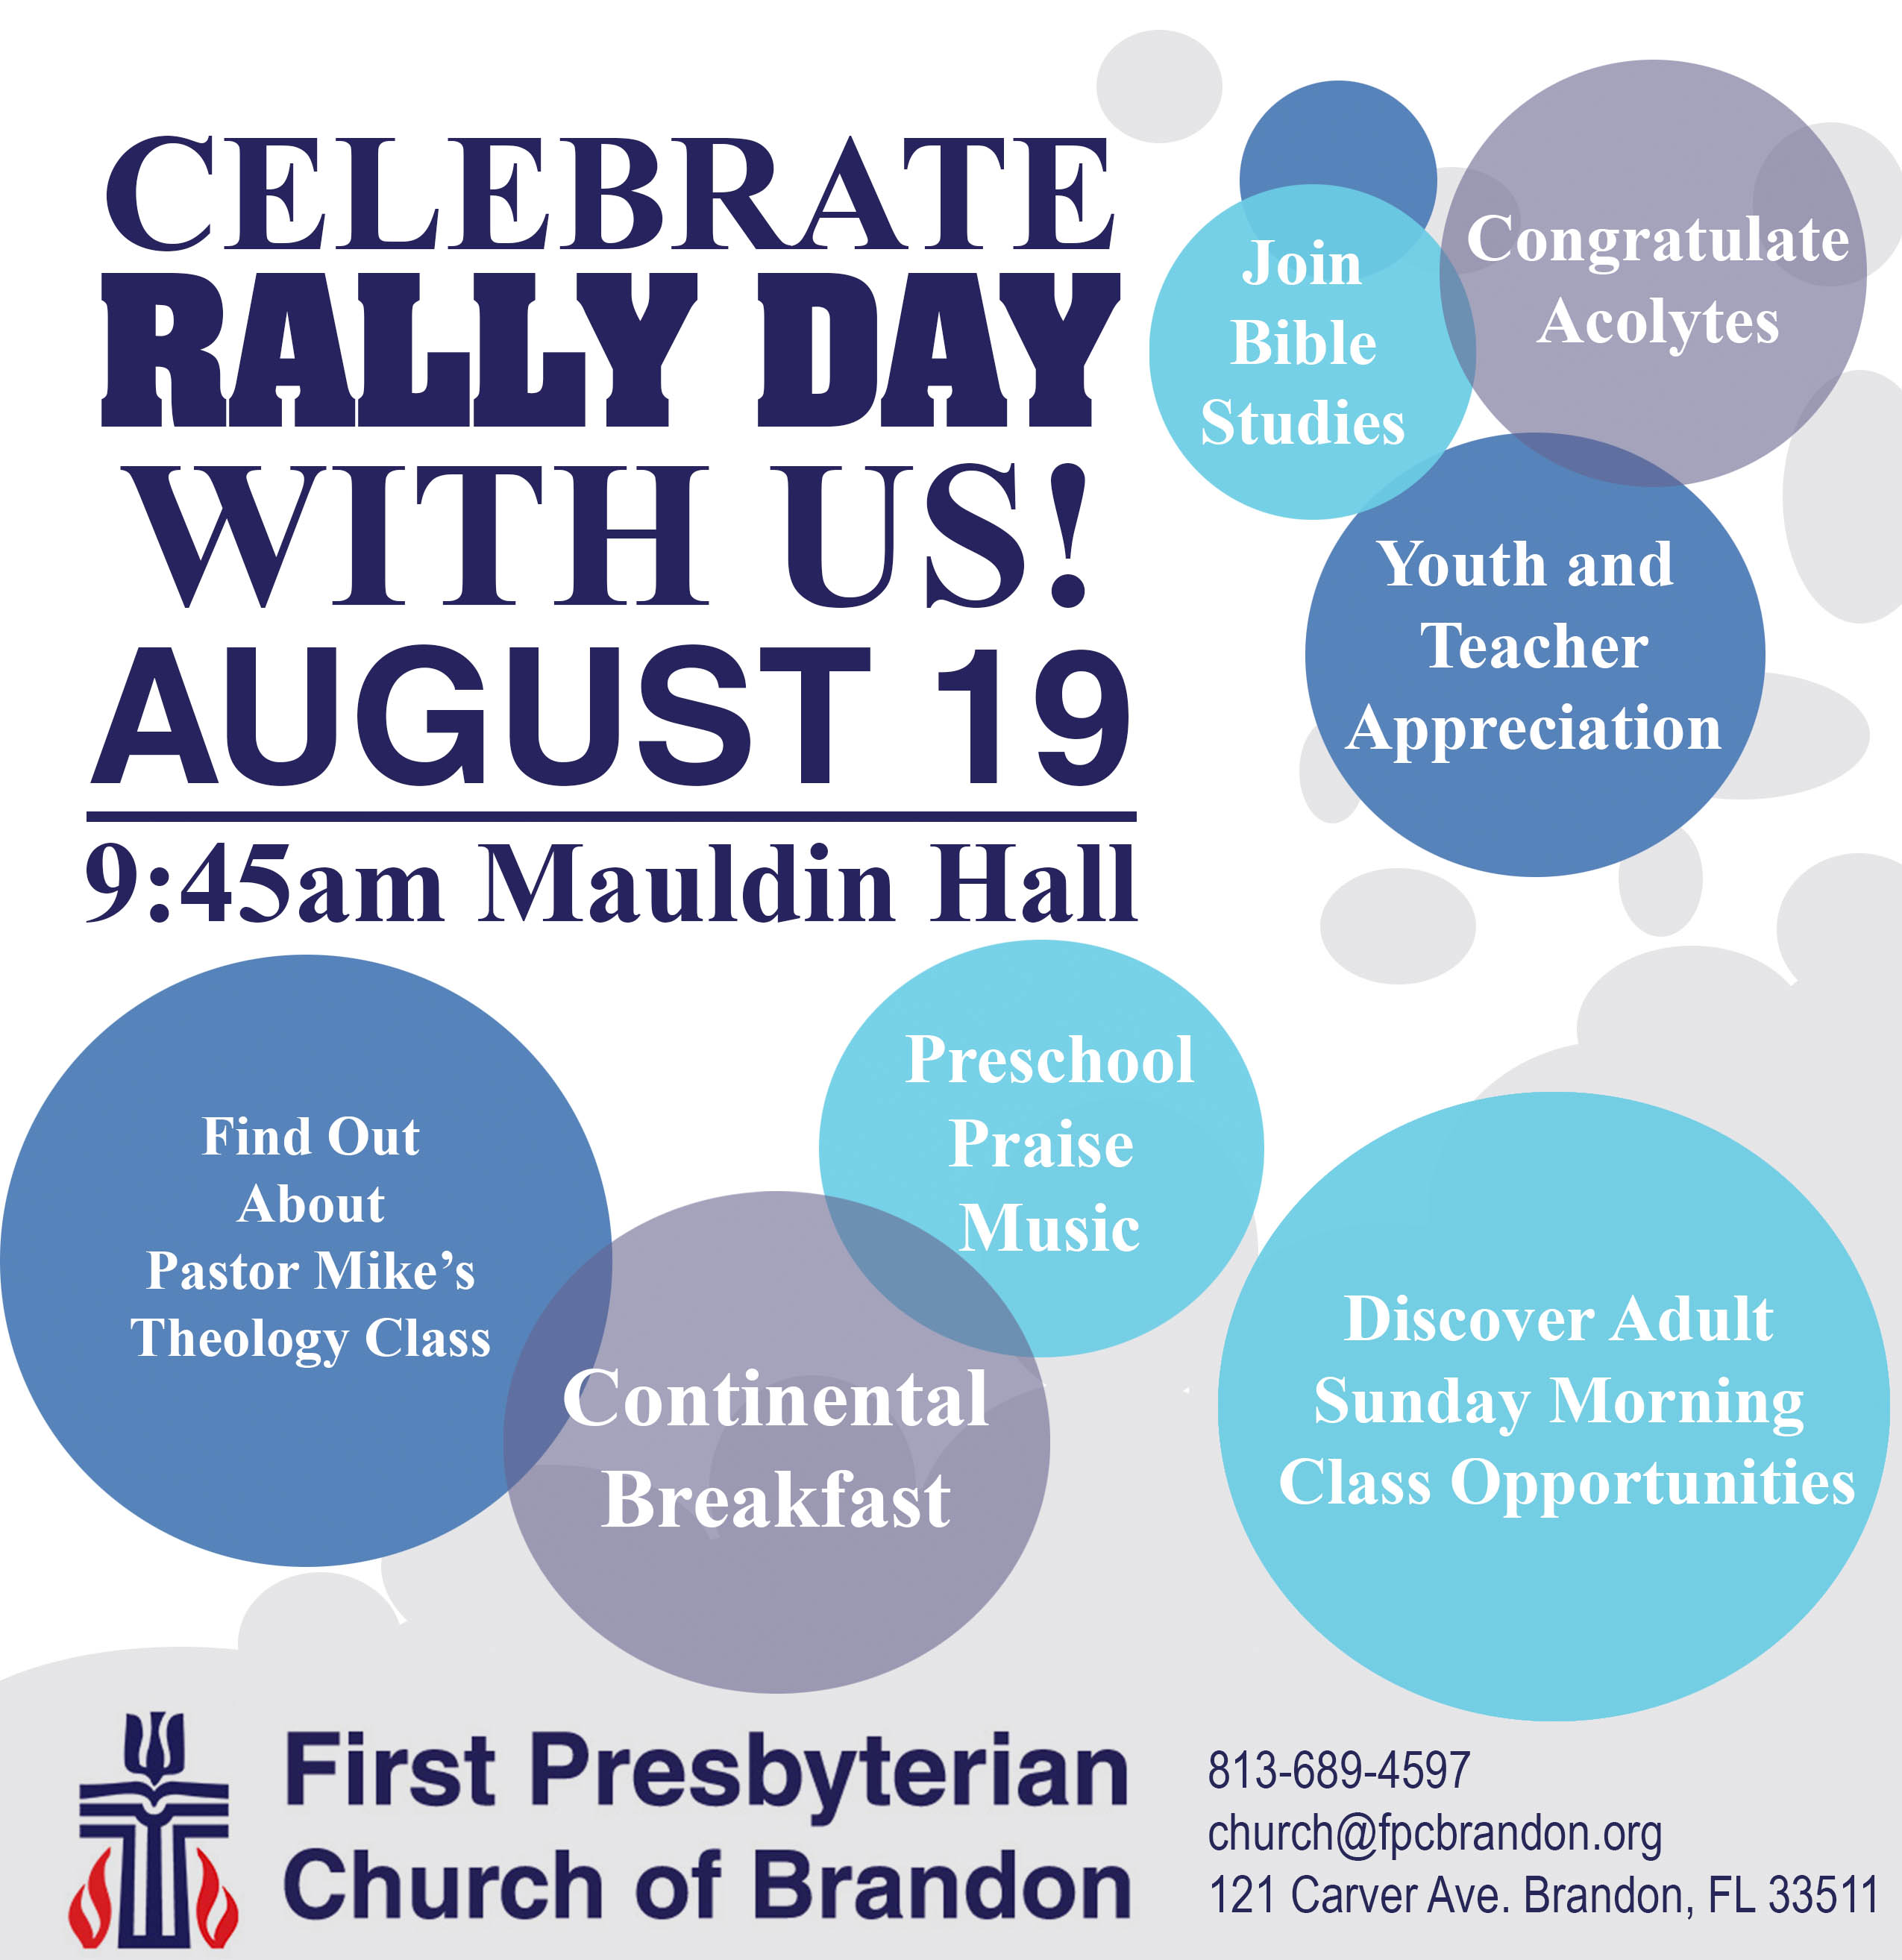 First Presbyterian Church of Brandon Florida Rally Day Invitation August 19, 2018. Free Continental Breakfast, Pastor Mike's Theology Class, Preschool Praise Music, Youth and Teacher Appreciation, Join Bible Studies for Men and Women, Congratulate Acolytes, Discover Adult Sunday Morning Class Opportunities